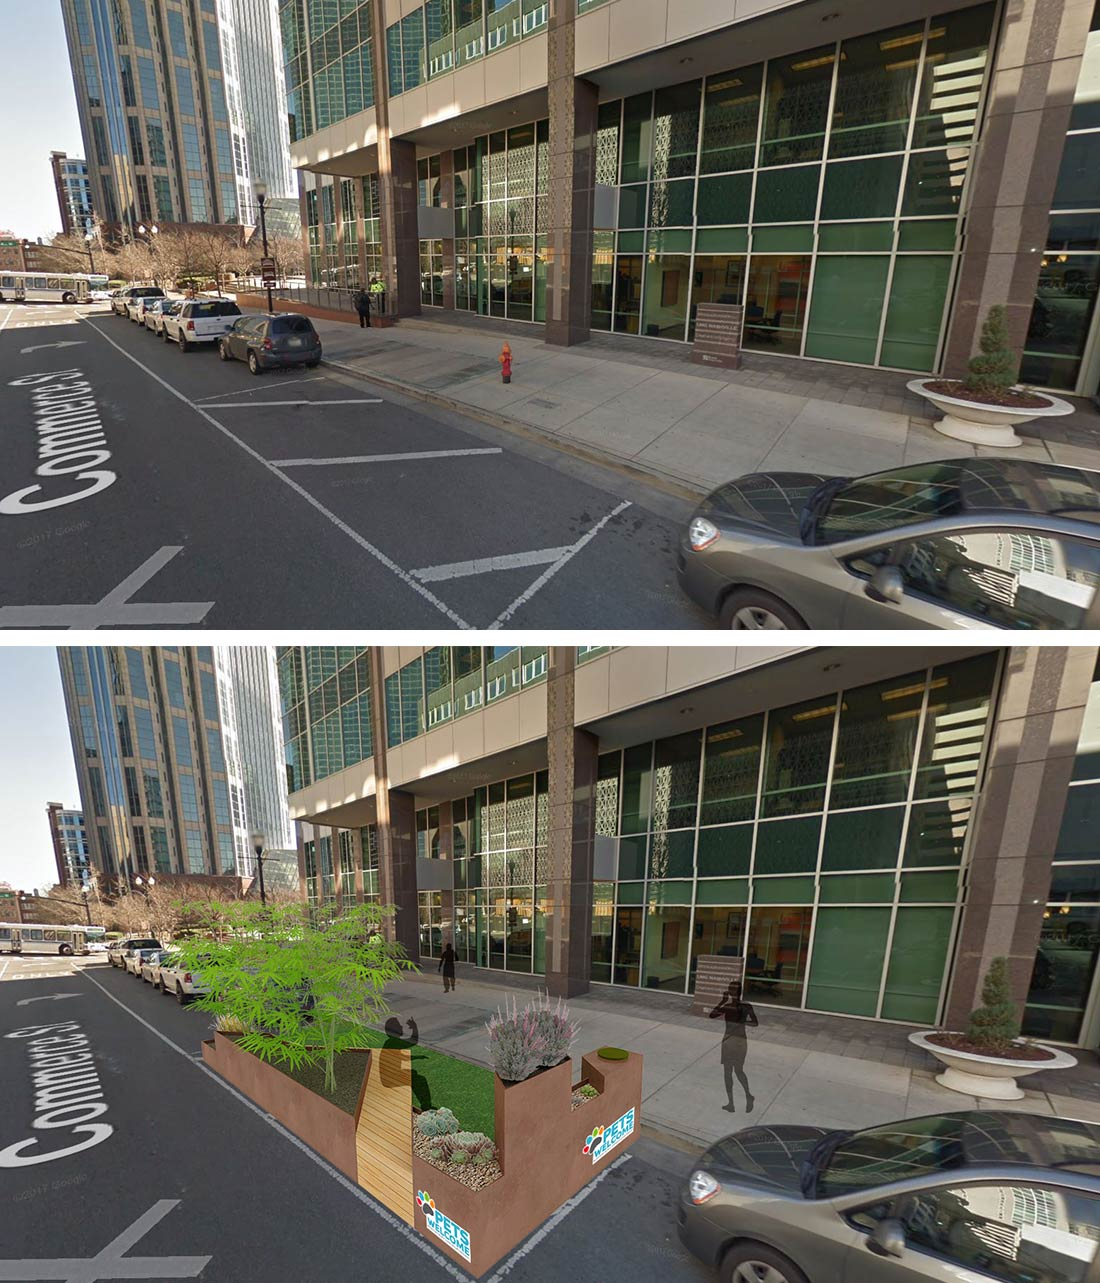 street before and after adding a parklet